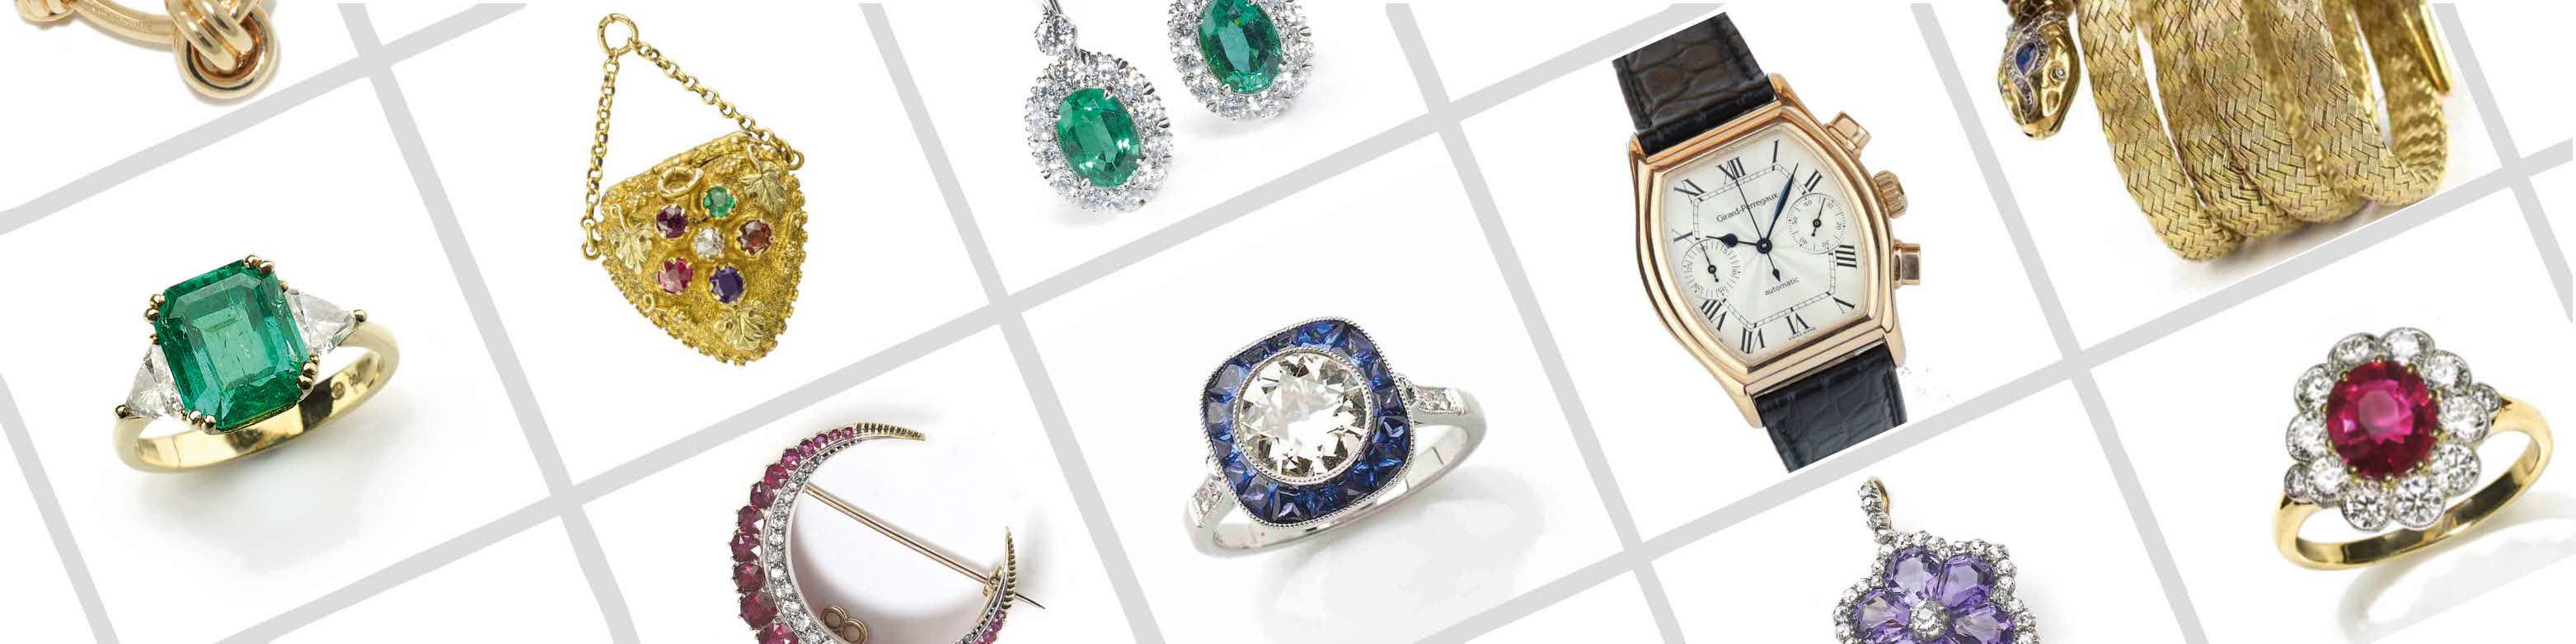 Jewellery Valuations London Central Mayfair